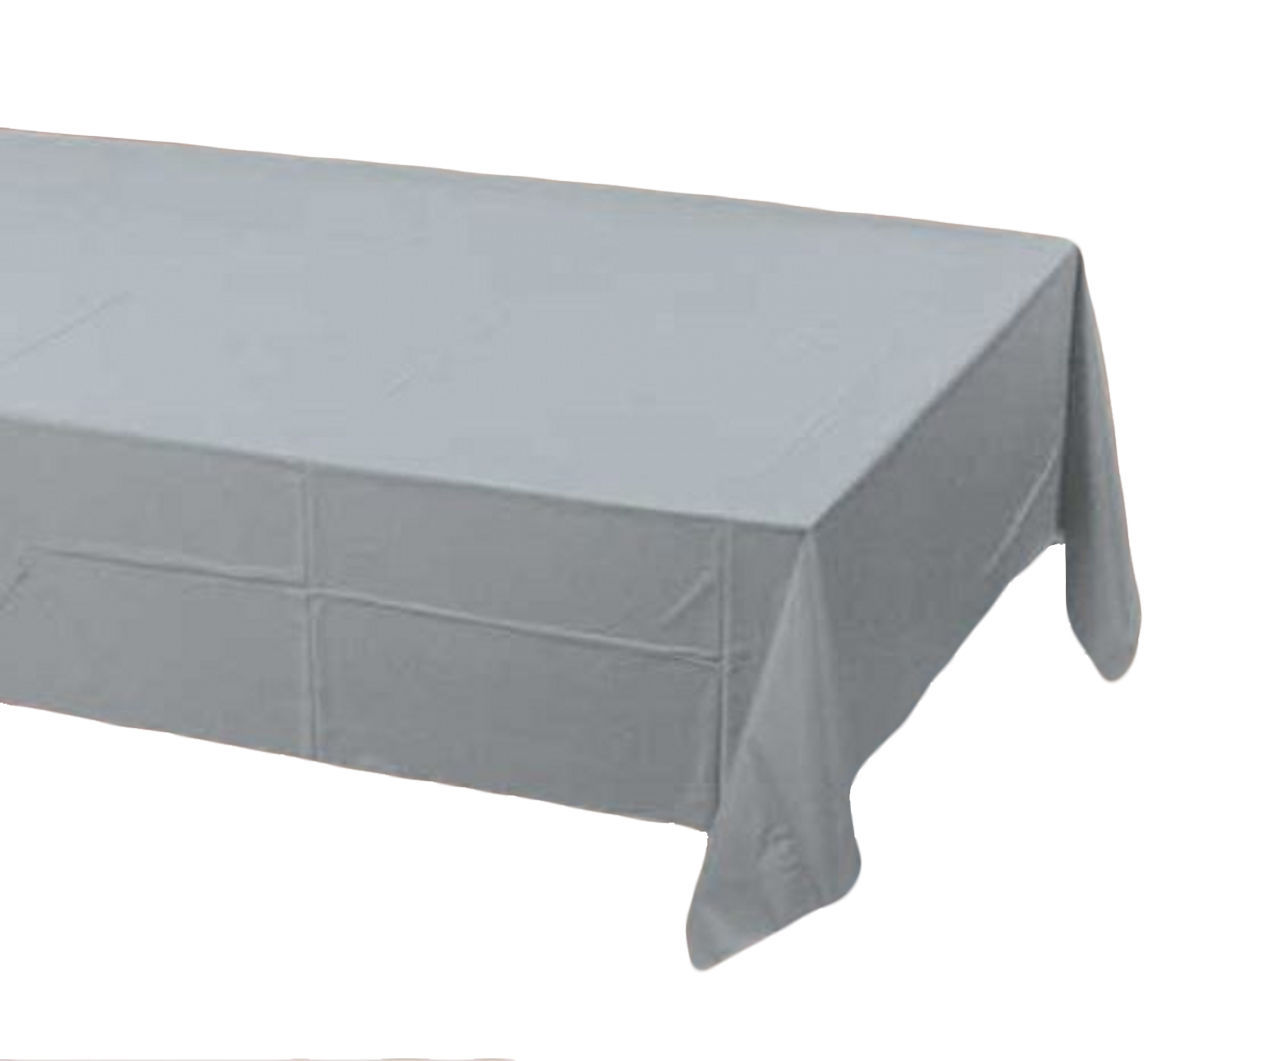 2 Creative Converting Paper - plastic lined  Banquet Table Covers - Silver